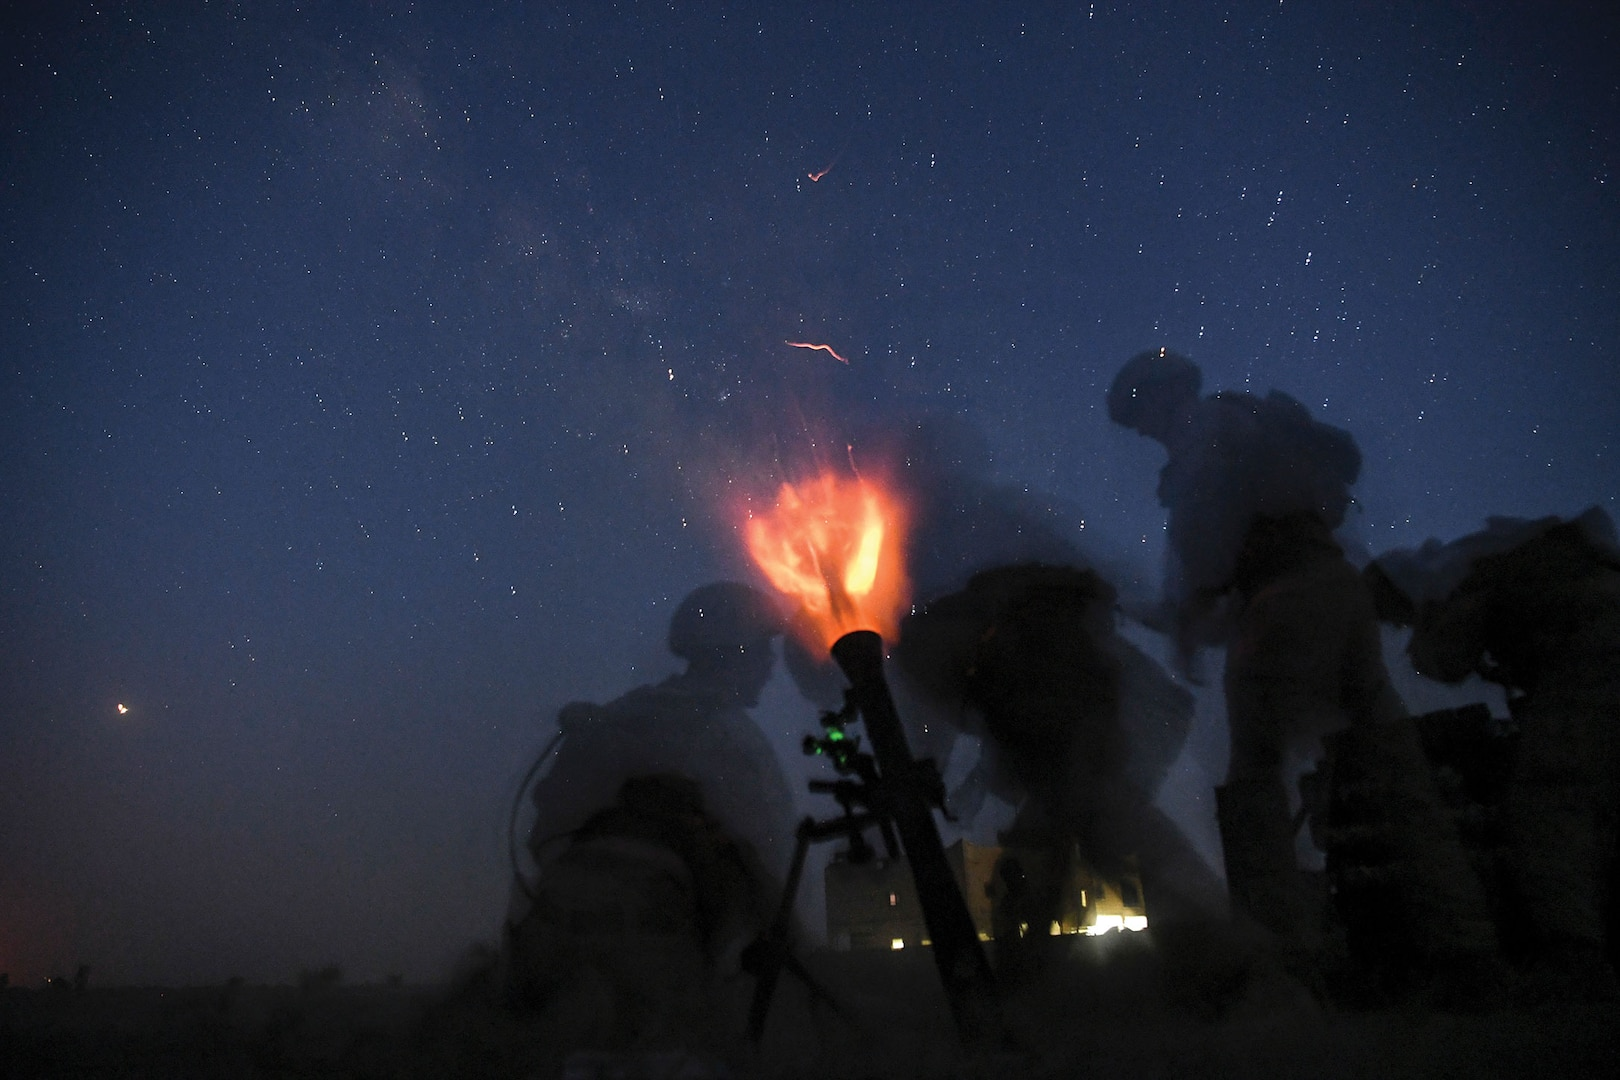 Marines fire 81mm mortar during training in support of Operation Inherent Resolve in Hajin, Syria